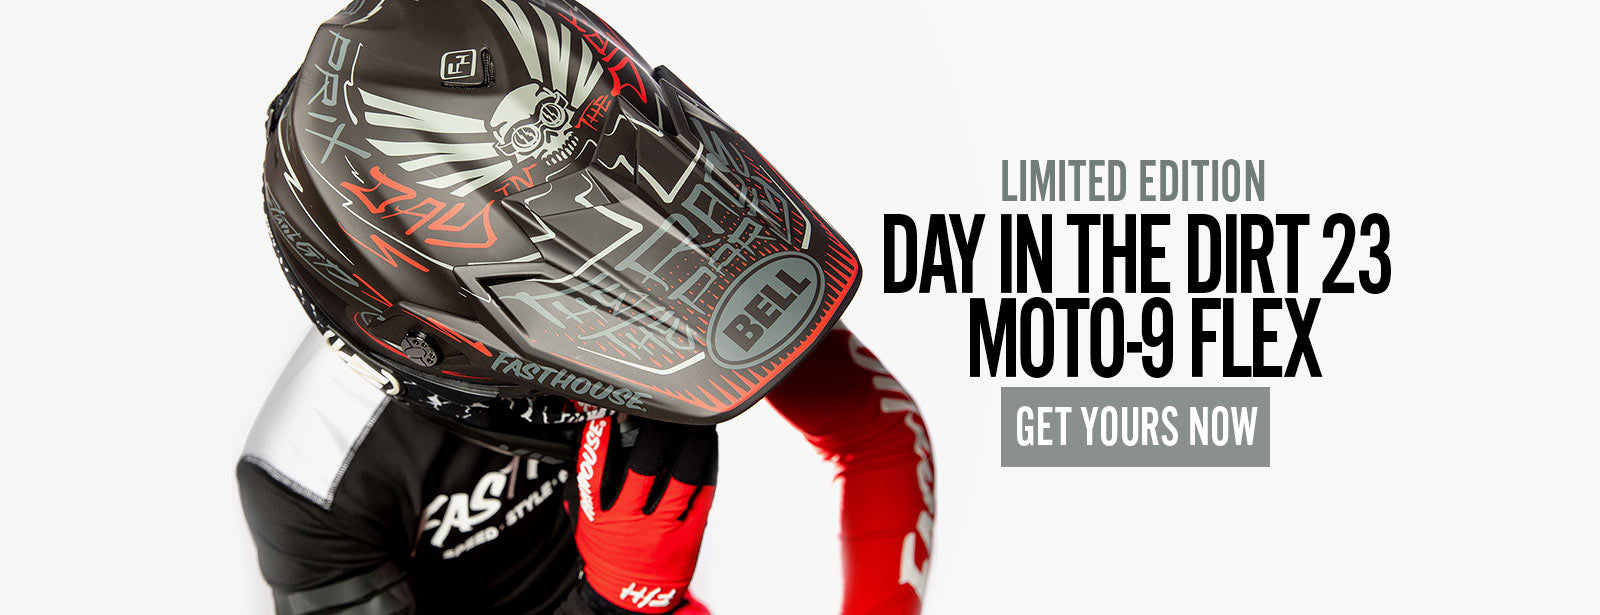 Day in the Dirt 23 Moto 9 Flex Helmet